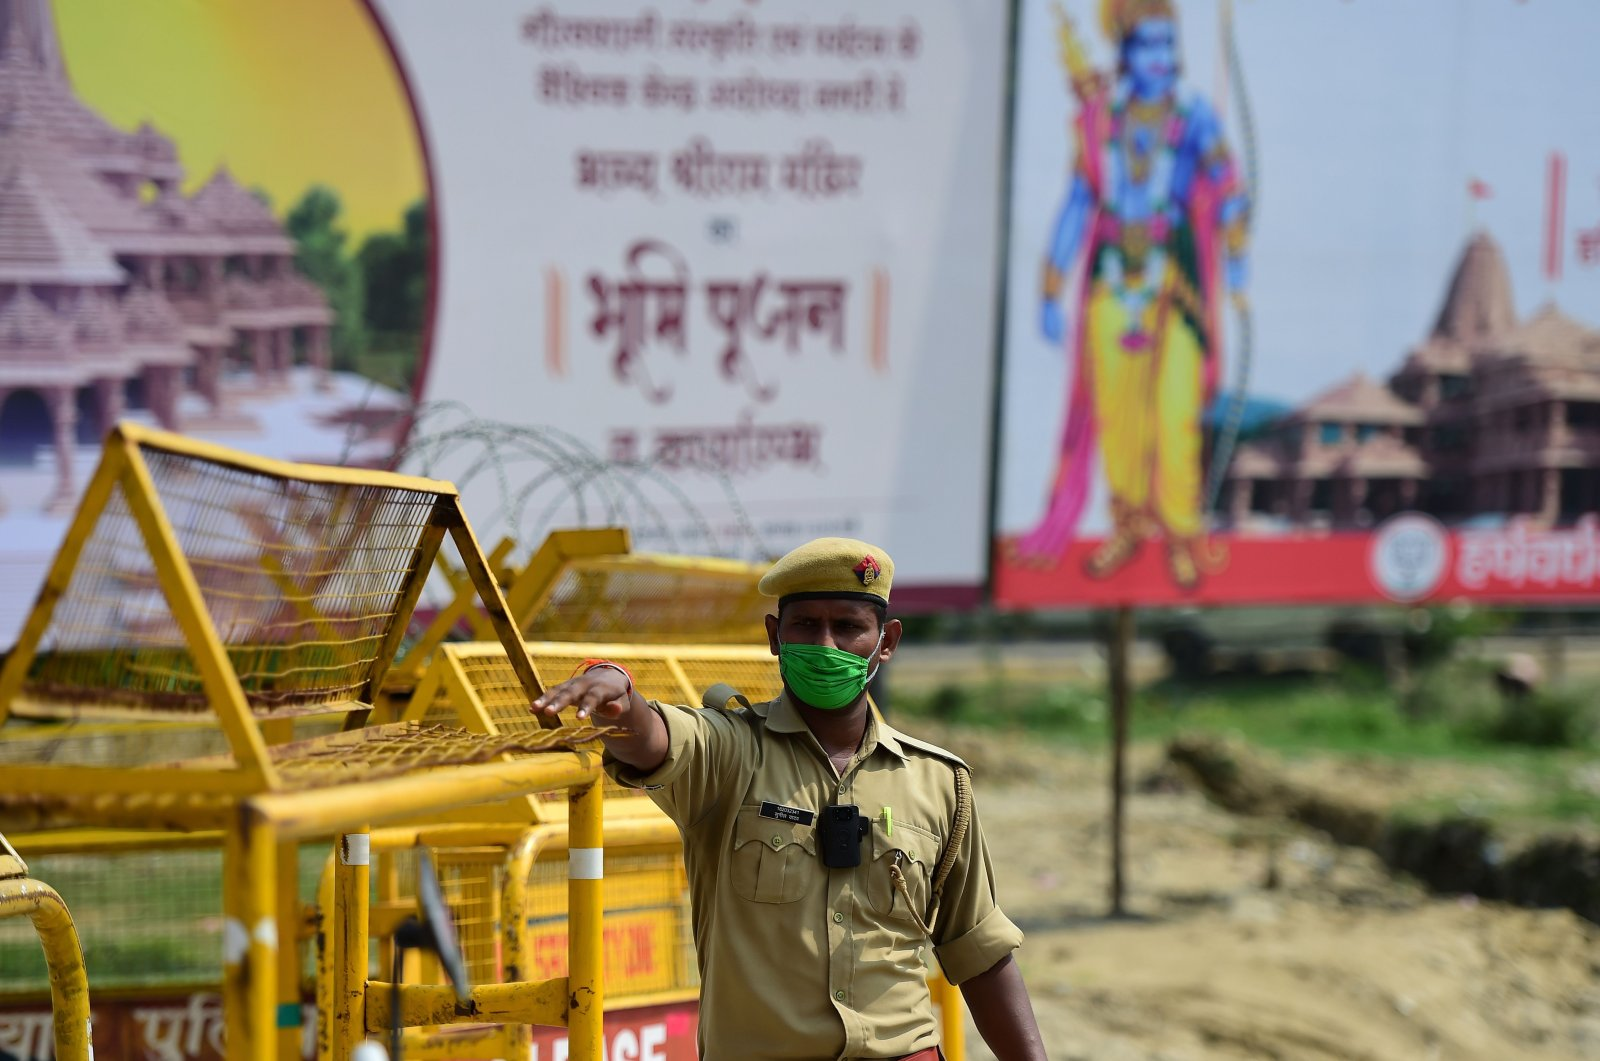 A policeman gestures as he stands at a checkpoint ahead of the ground-breaking ceremony of the proposed Ram Temple in Ayodhya, India, Aug. 4, 2020. (AFP Photo)